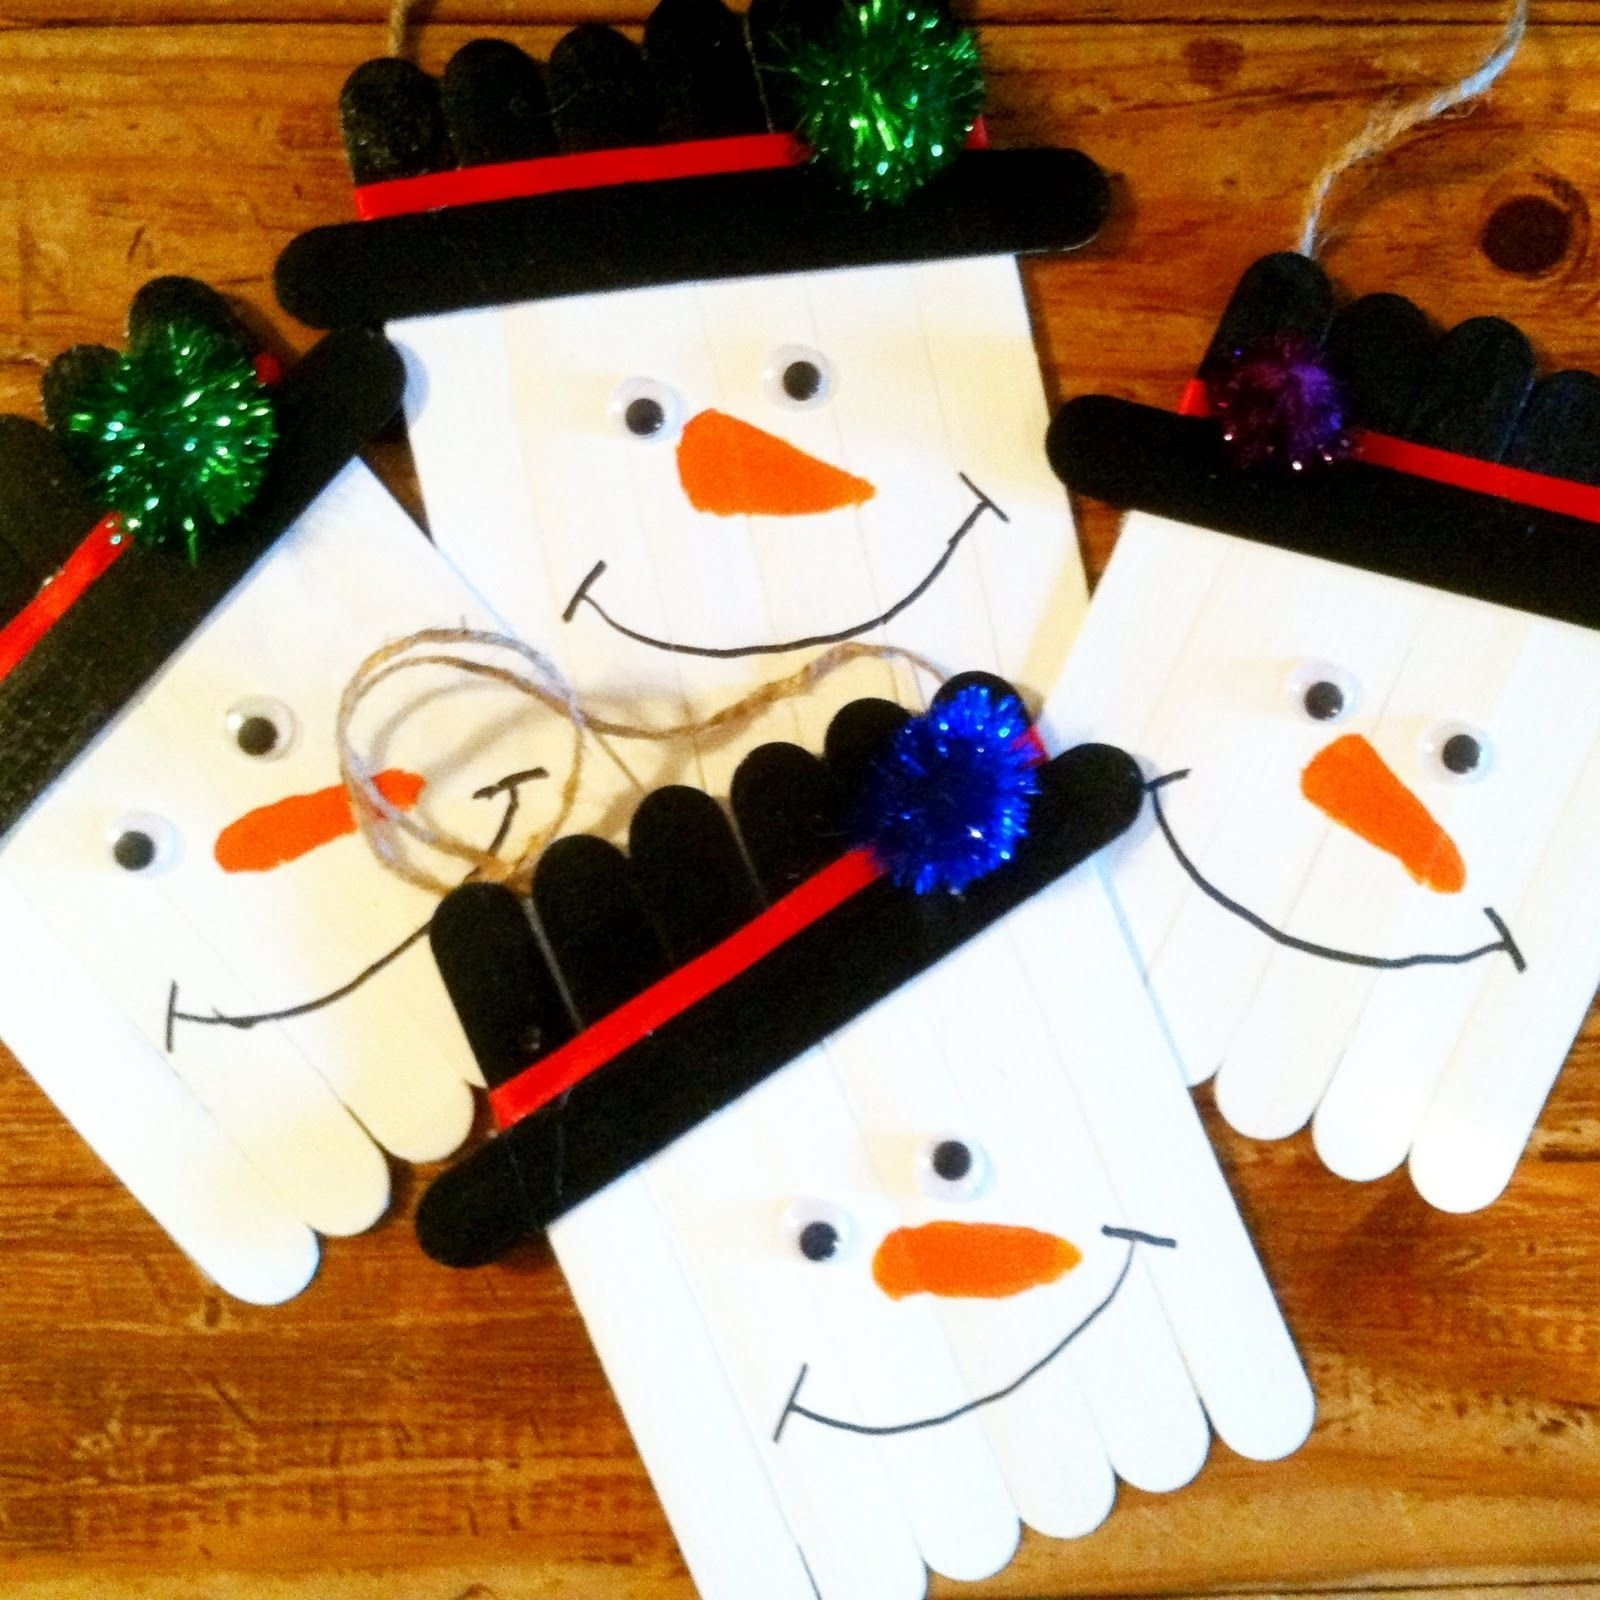 10 Perfect Christmas Ideas For Kids Pinterest christmas crafts pinterest we made some christmas crafts this week 1 2020